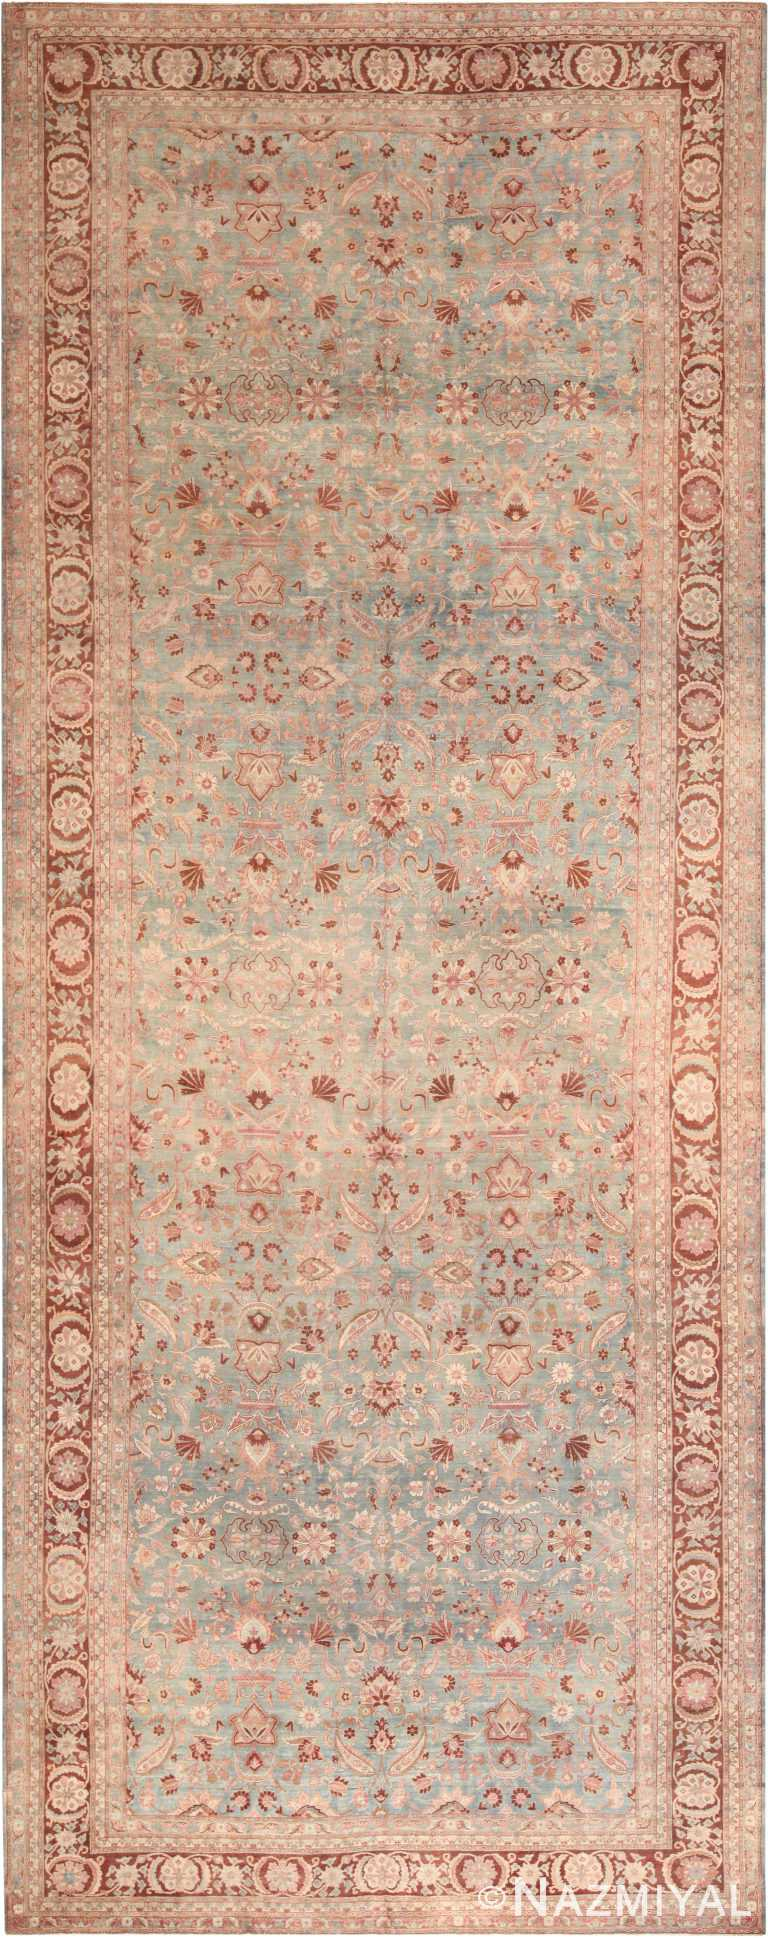 Oversized Light Blue Background Antique Persian Kerman Rug 71048 by Nazmiyal Antique Rugs